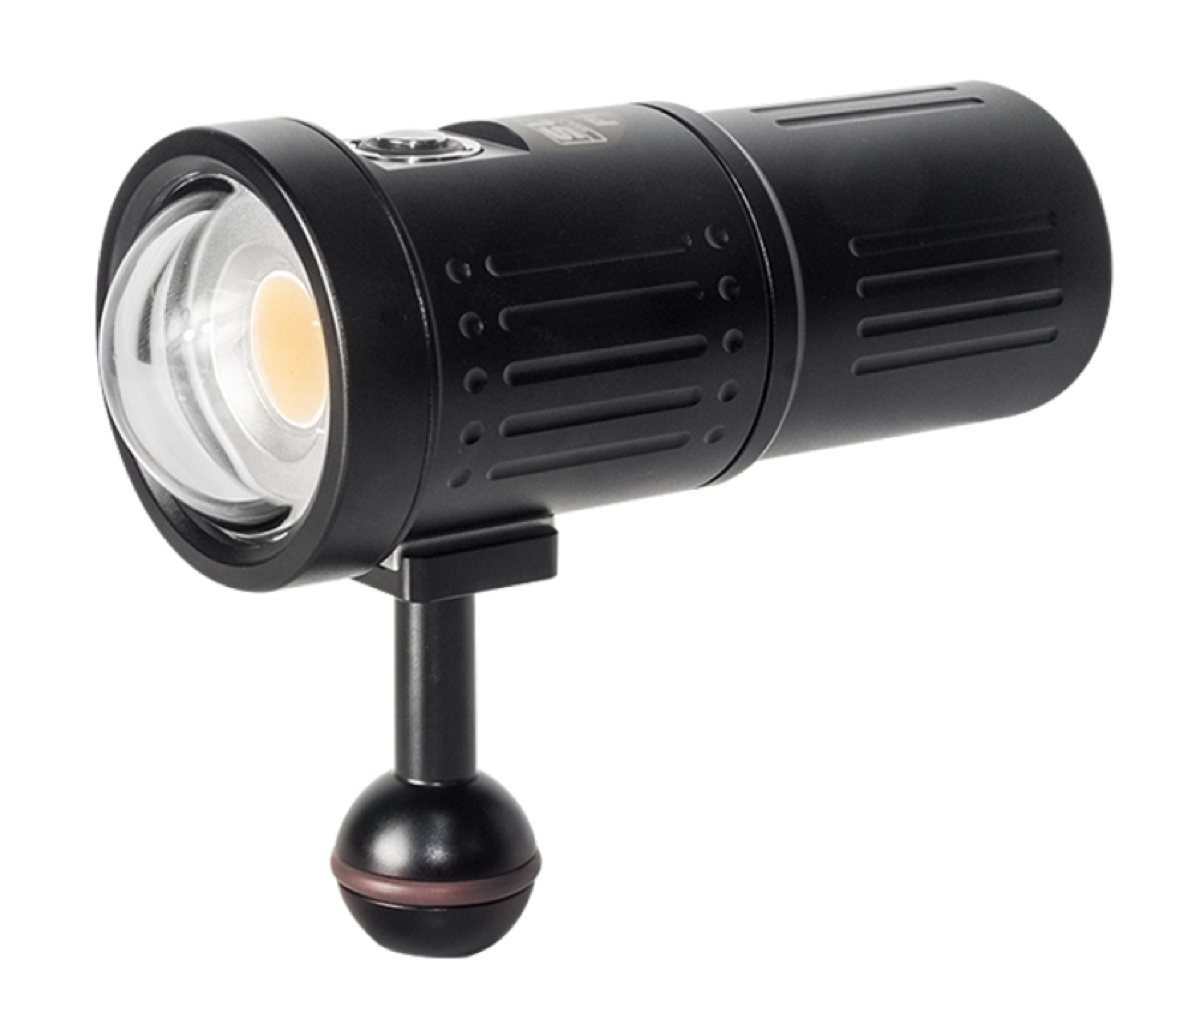 Scubalamp V3K Photo/Video Light - 5000 Lumens